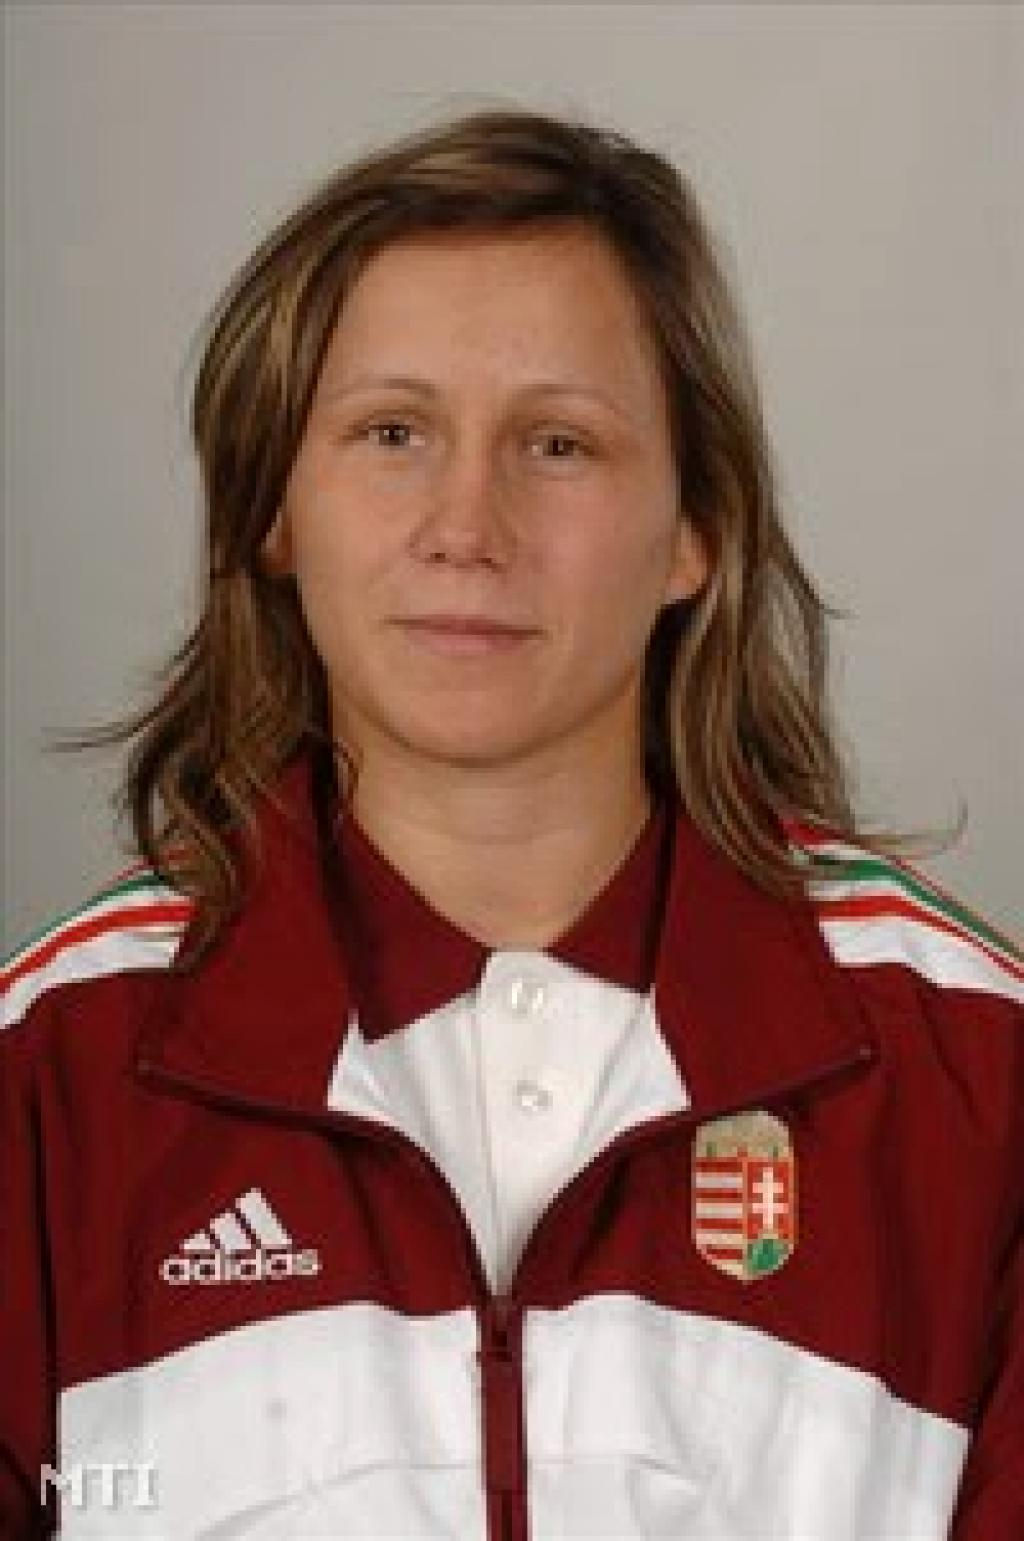 World of Judo mourns about death of 26-year old Ilona Perge